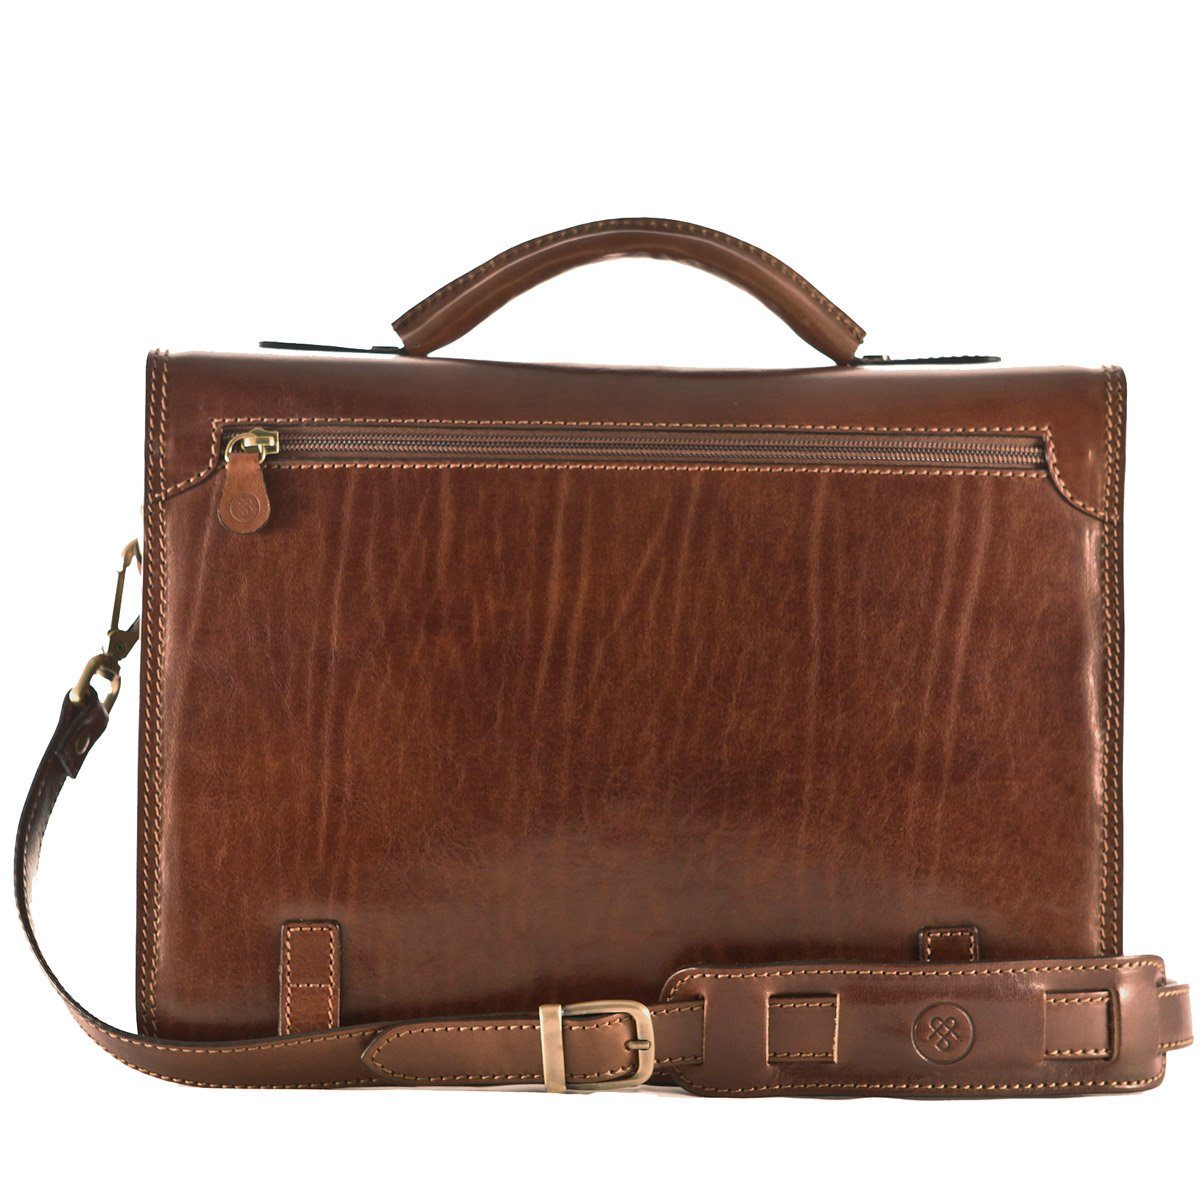 Maxwell Scott Personalized Luxury Tan Mens Leather Satchels (The Battista) - One Size by Maxwell Scott Bags (Image #5)